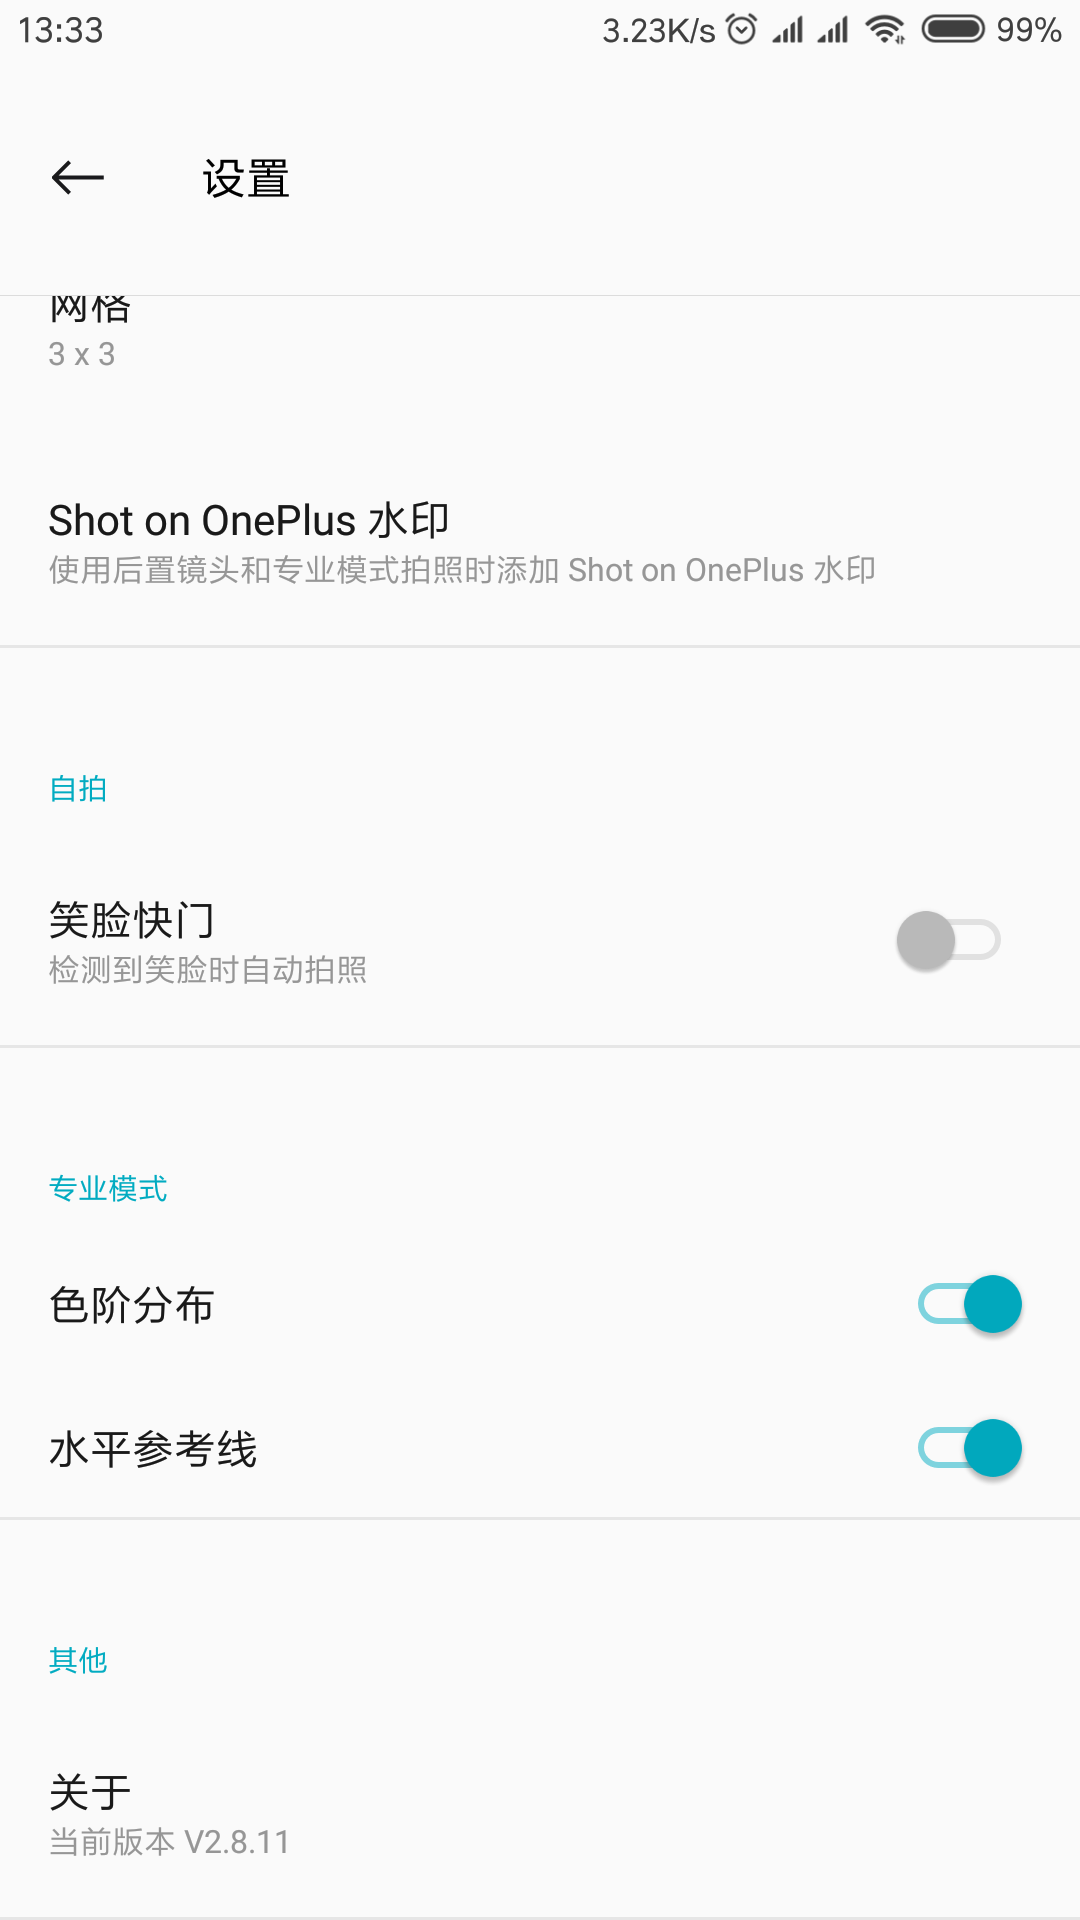 Screenshot_2018-08-02-13-33-50-510_com.oneplus.ca.png